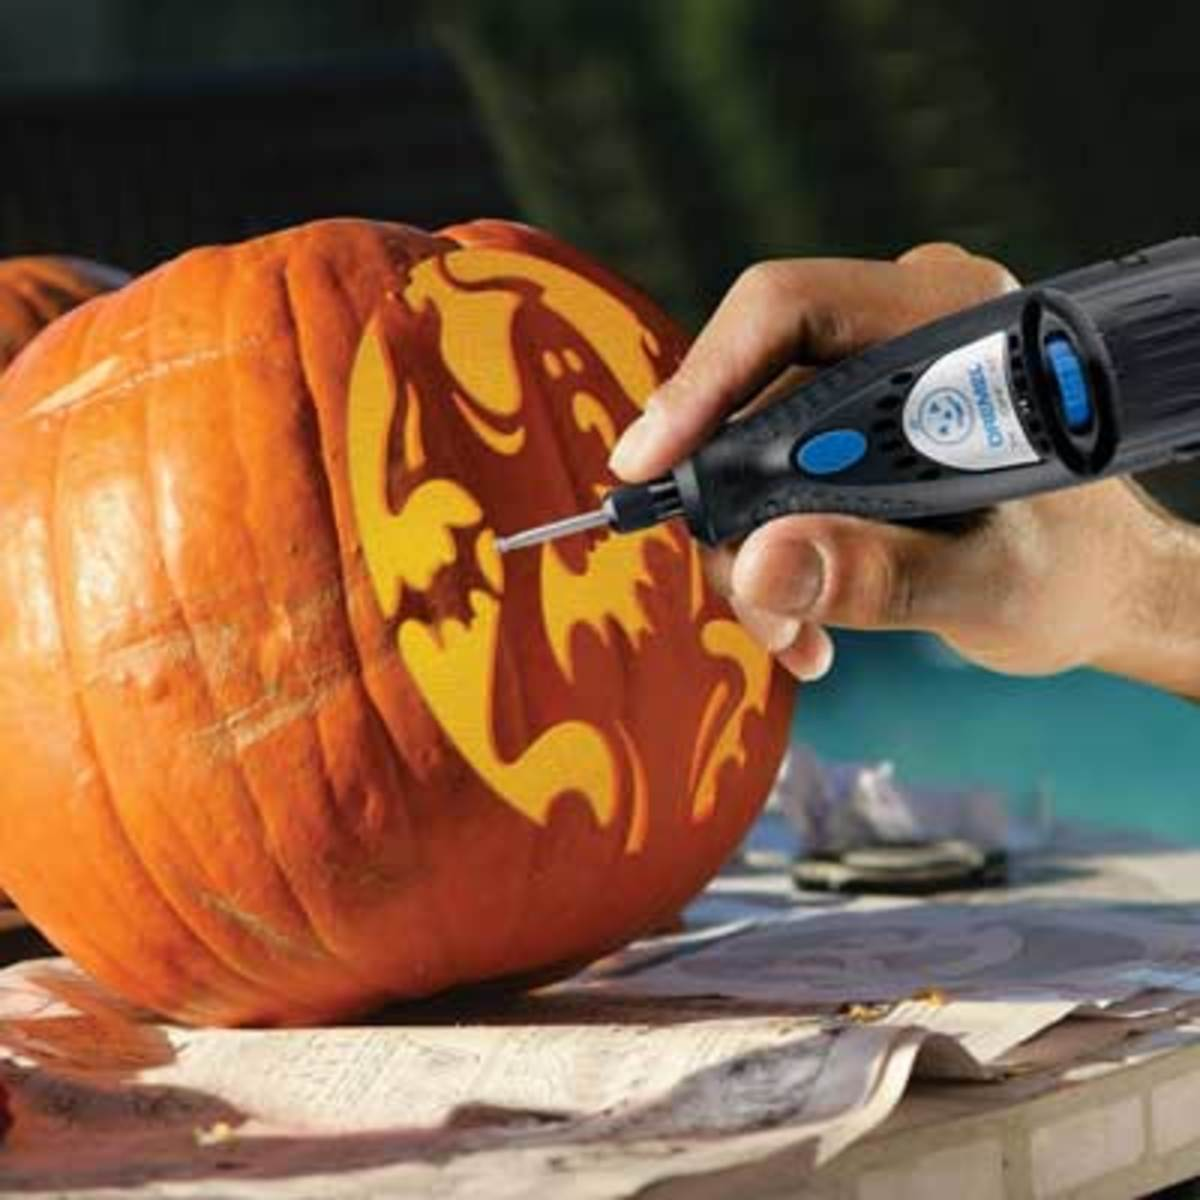 The best pumpkin carving tools to use for pumpkins